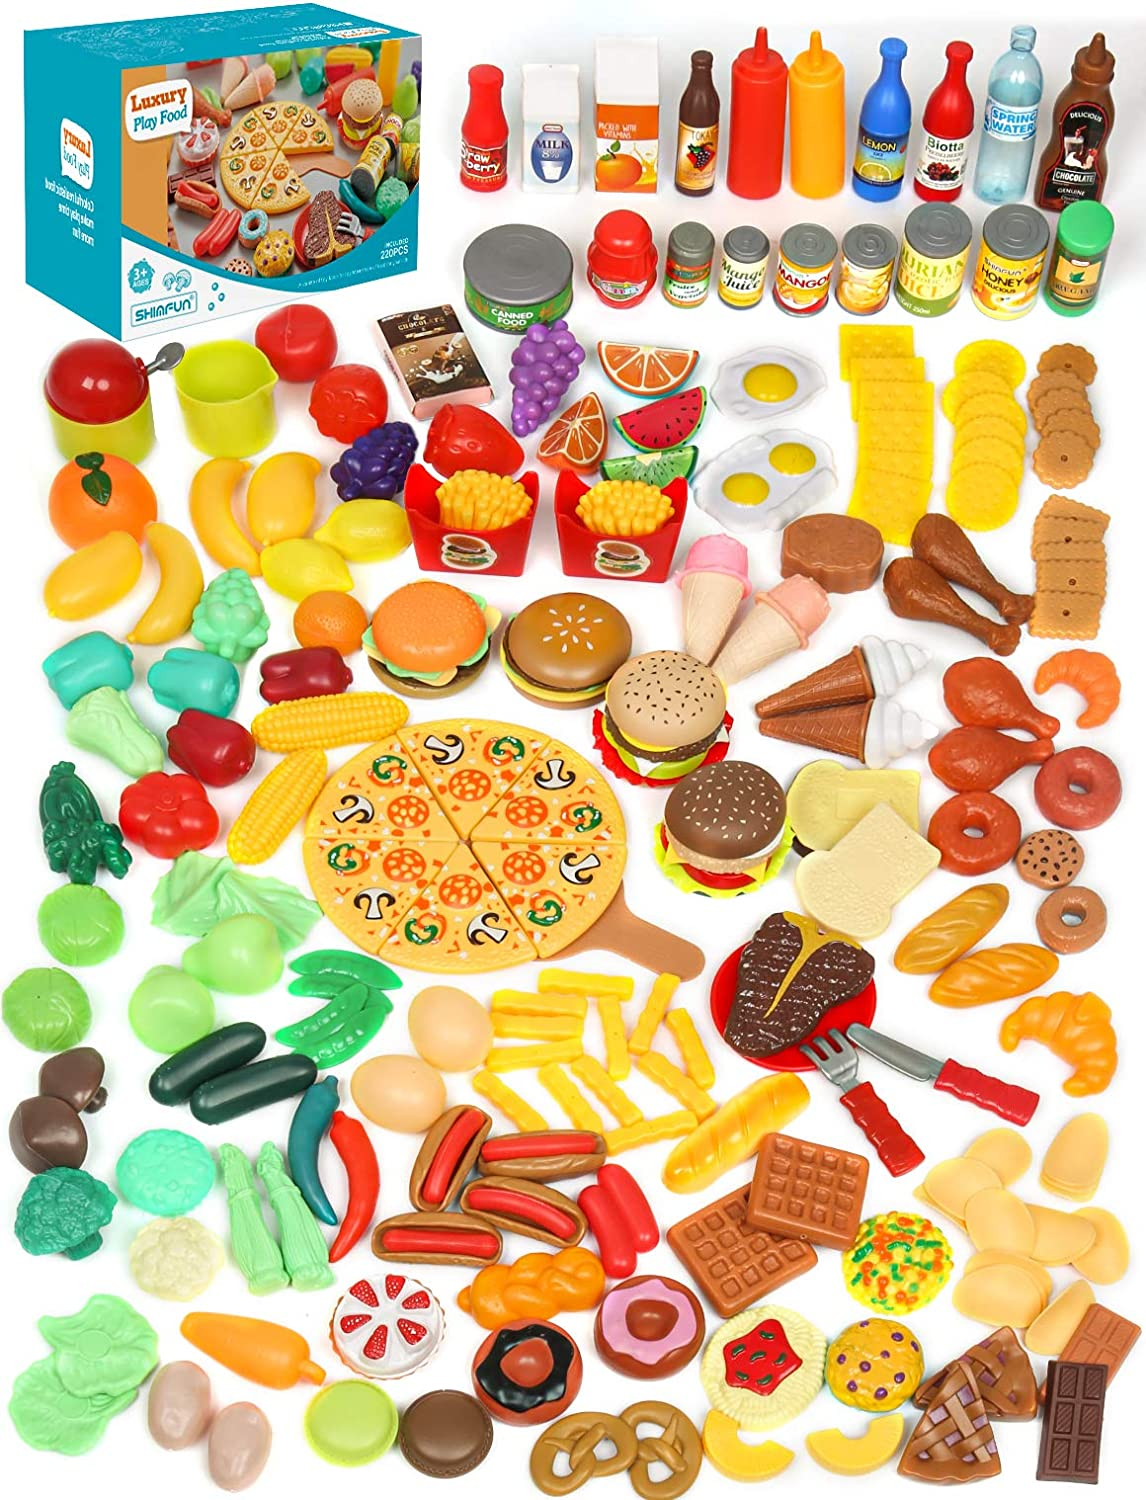 Shimfun Play Food, 220Pc Play Food Sets for Kids Kitchen - Toy Food Assortment, Fake Food for Early Learning & Pretend Play, Toy Kitchen Playset & Play Kitchen Accessories for Toddlers Cooking Fun